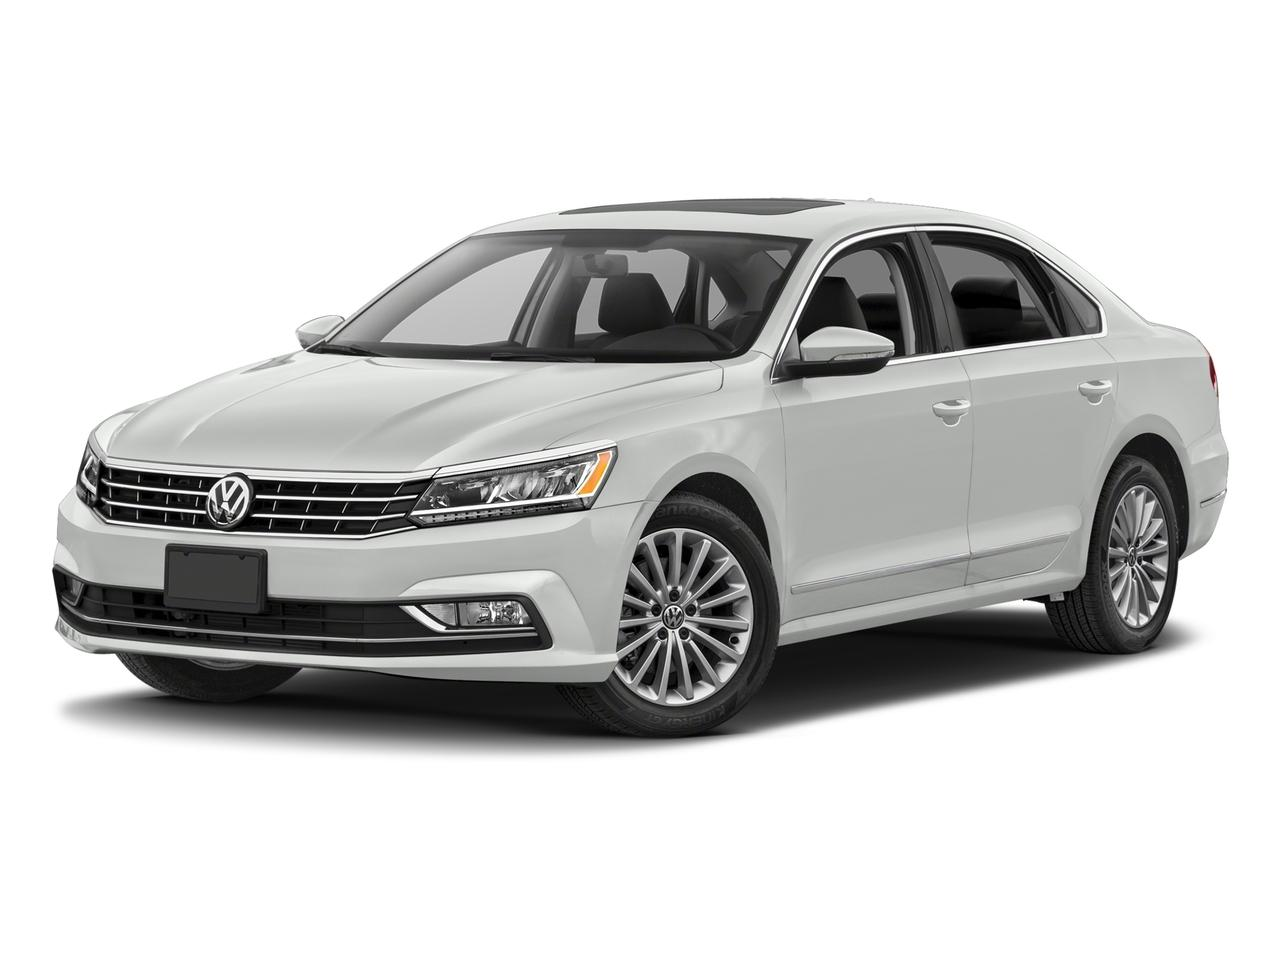 2017 Volkswagen Passat Vehicle Photo in San Antonio, TX 78257